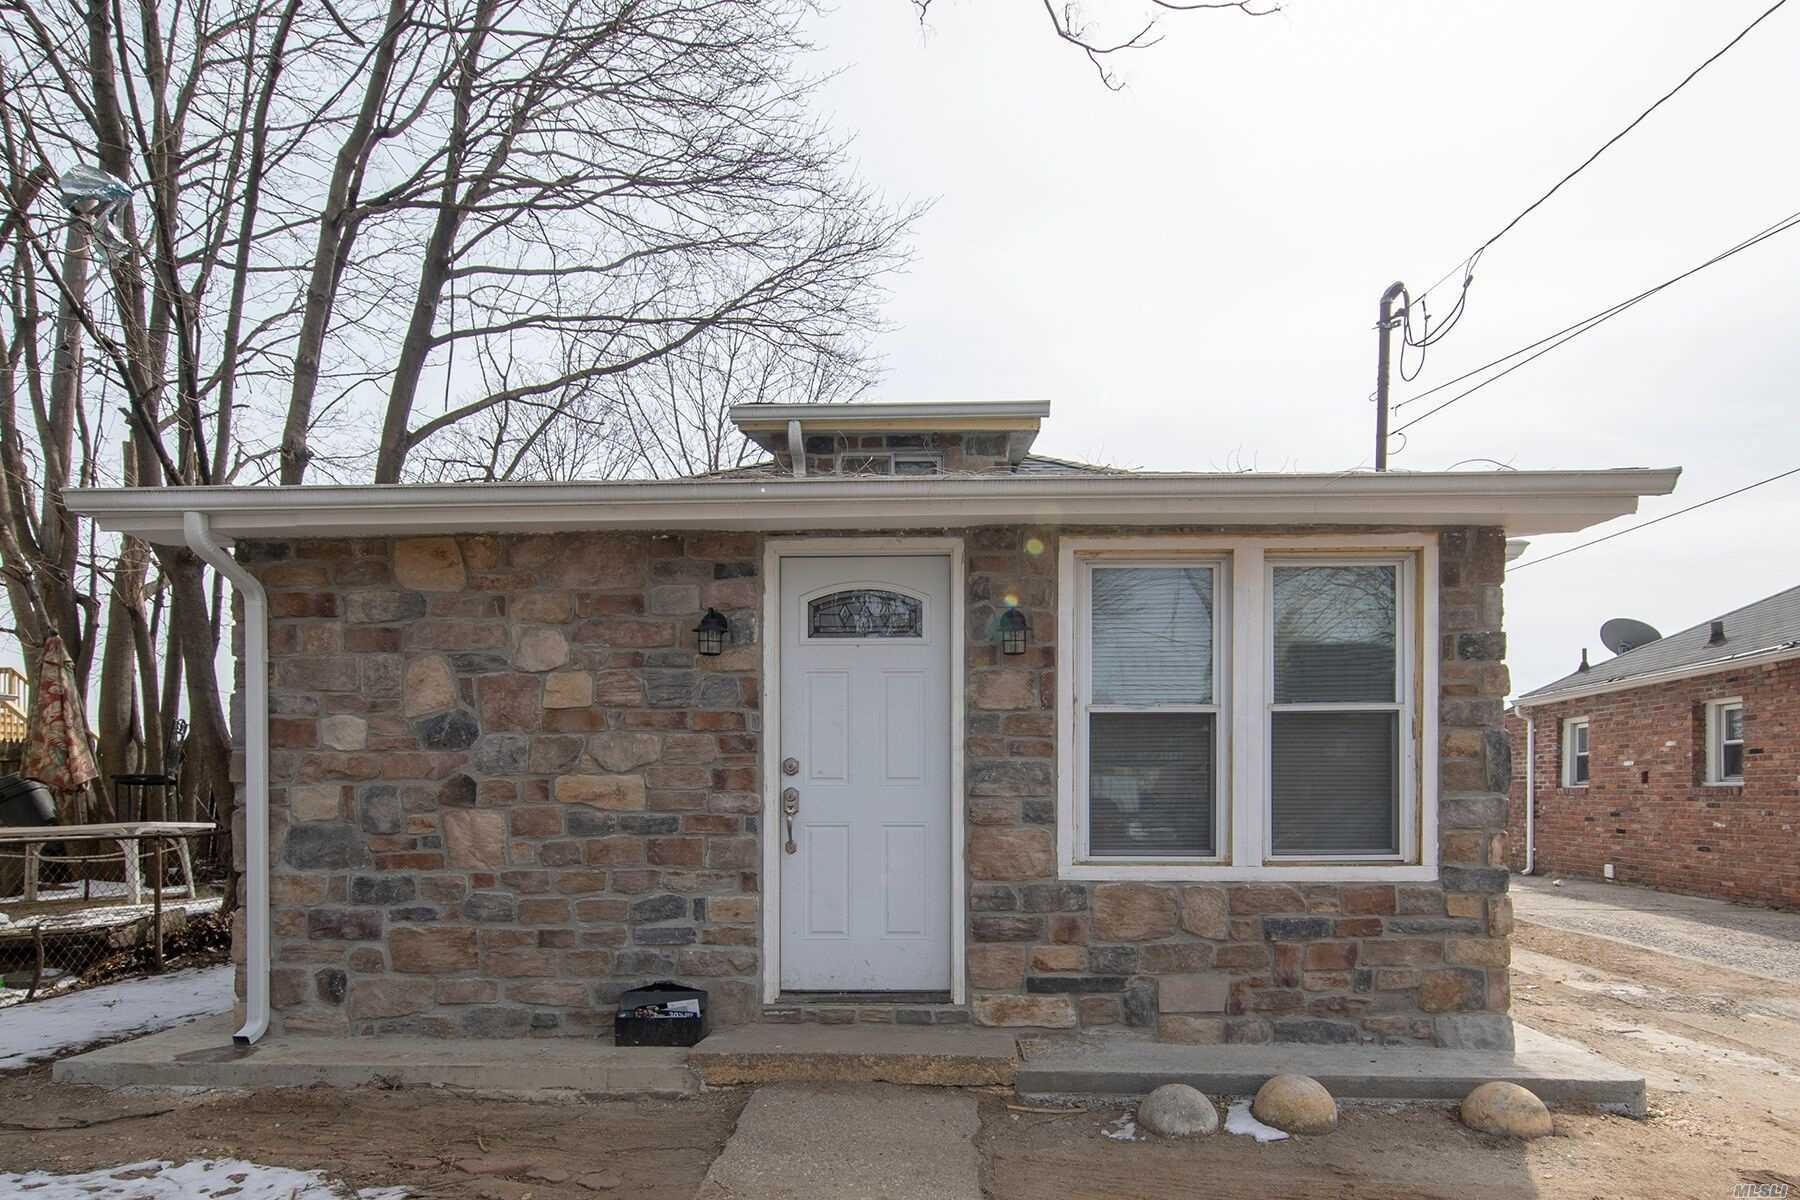 Gorgeous Bungalow in Hempstead Featuring 3 Bedrooms, 2 Bath , Nice Kitchen With Stainless steel Appliances , New Bathrooms, New roof , New Siding , New Electric, High Hats Thoroughout the house, New Doors , Laminate Floors , 15-20 mins to Queens and JFK. Must see!!